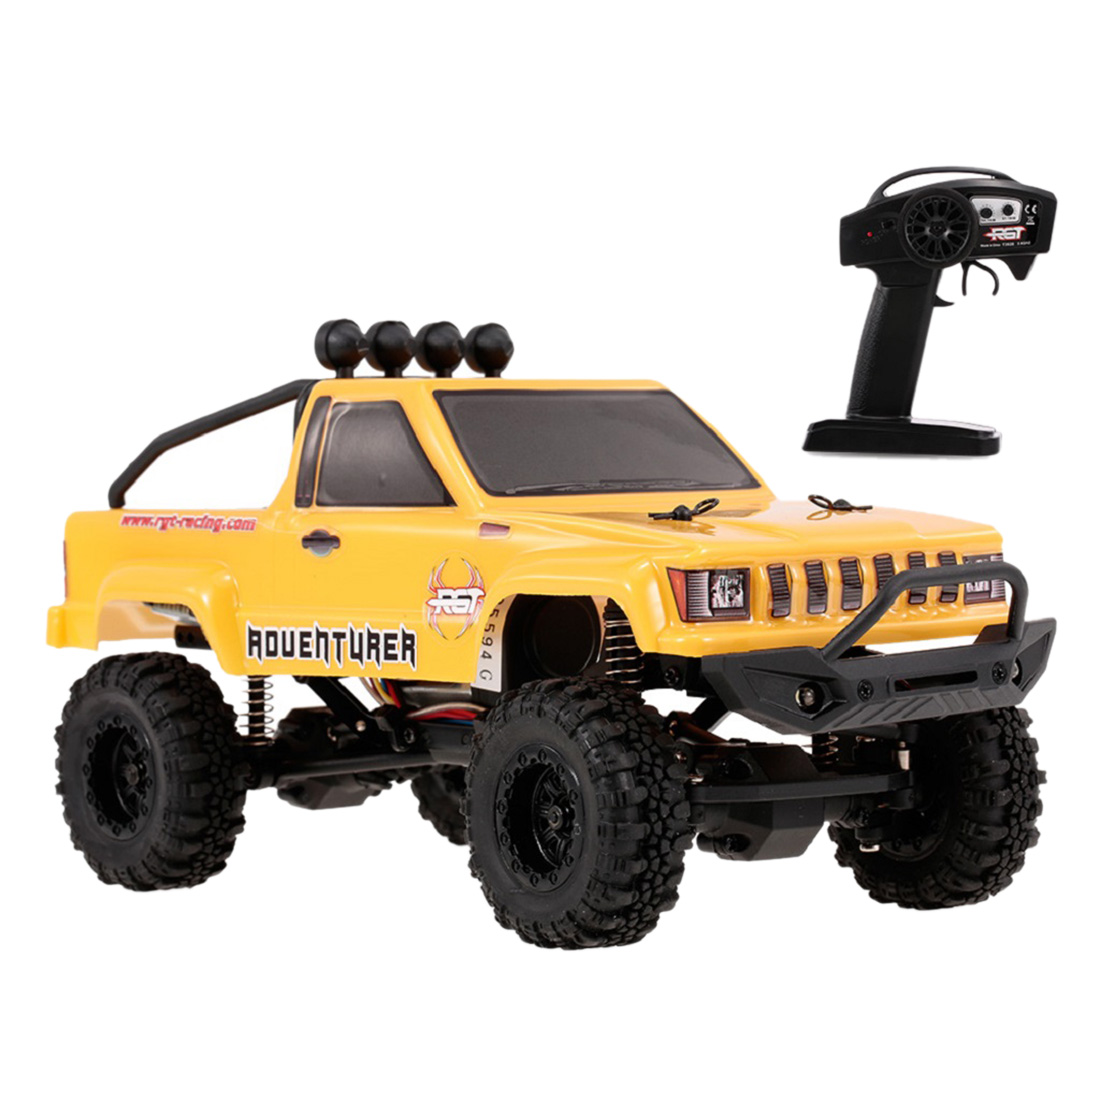 Rowsfire 1 Pcs RGT 1:24 2.4G 4WD 15km/H Simulation RC Off-Road Vehicle Climbing Car RTR Version - Yellow/Red